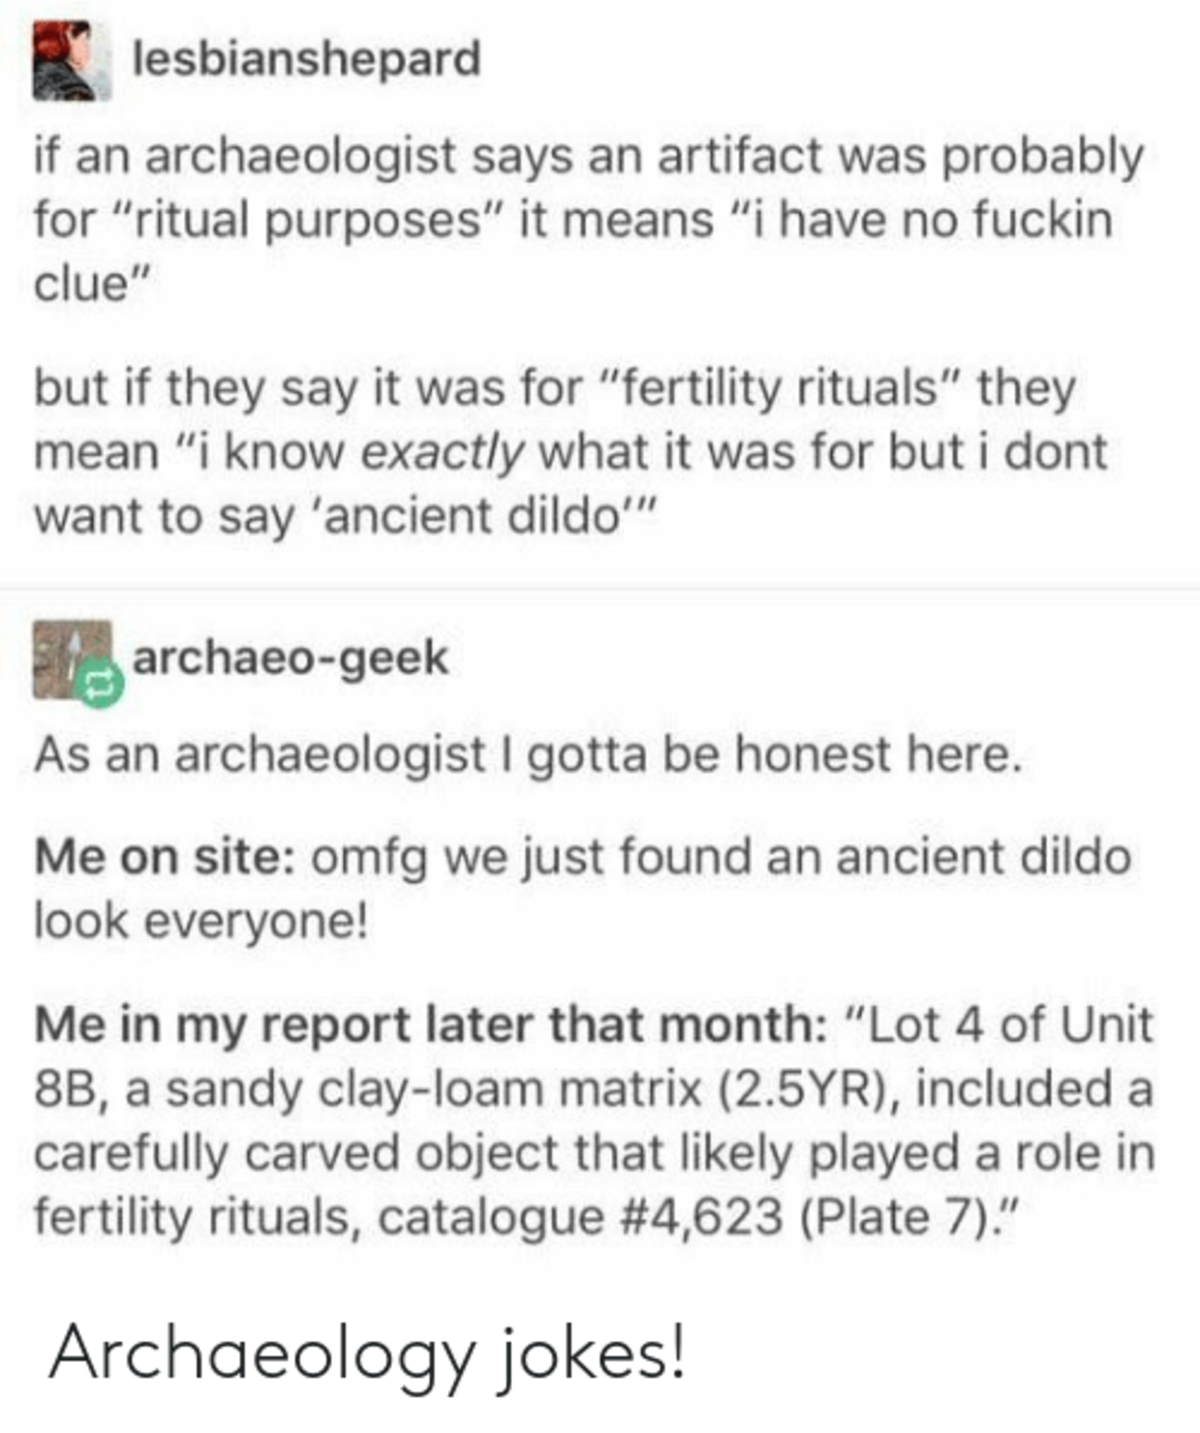 Archeology. .. My history teacher in high school used to be a archaeologist, he told us it's the worst job you could possibly have, and it doesn't pay jack But sometimes he'd